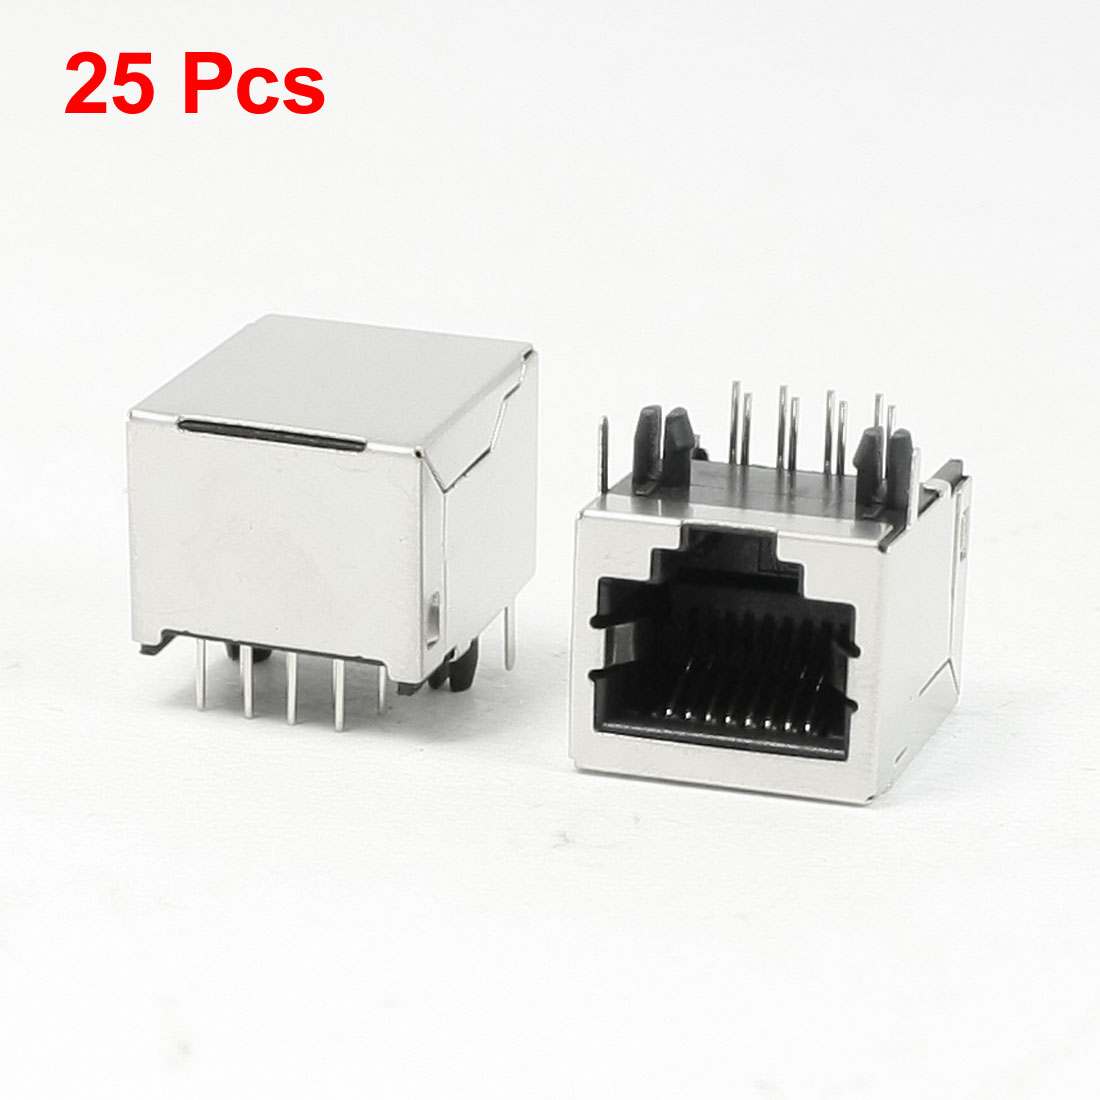 25 Pcs 8P8C RJ45 Modular Network Jacks Horizontal Mounting Connectors